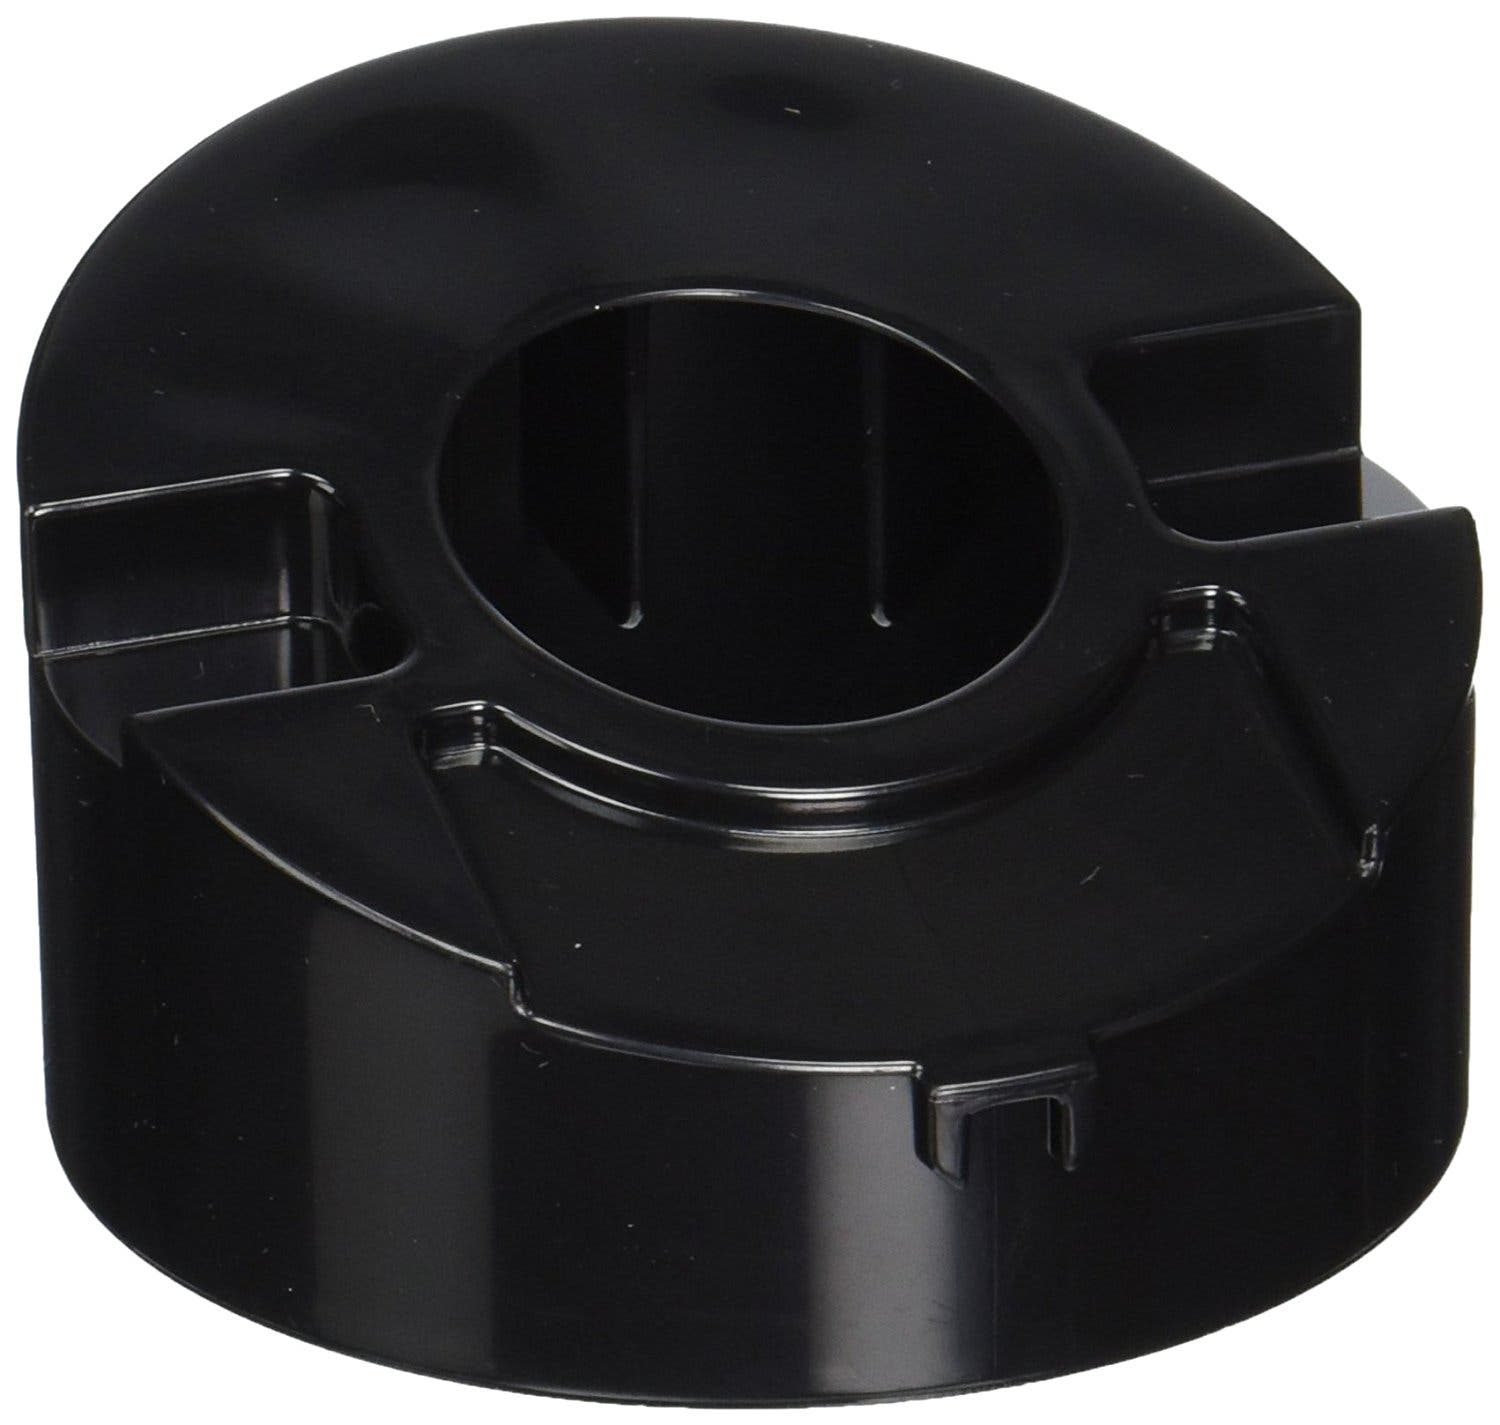 Hoover Filter Cap 517657001 For Linx Cyclonic Stick Vacuum